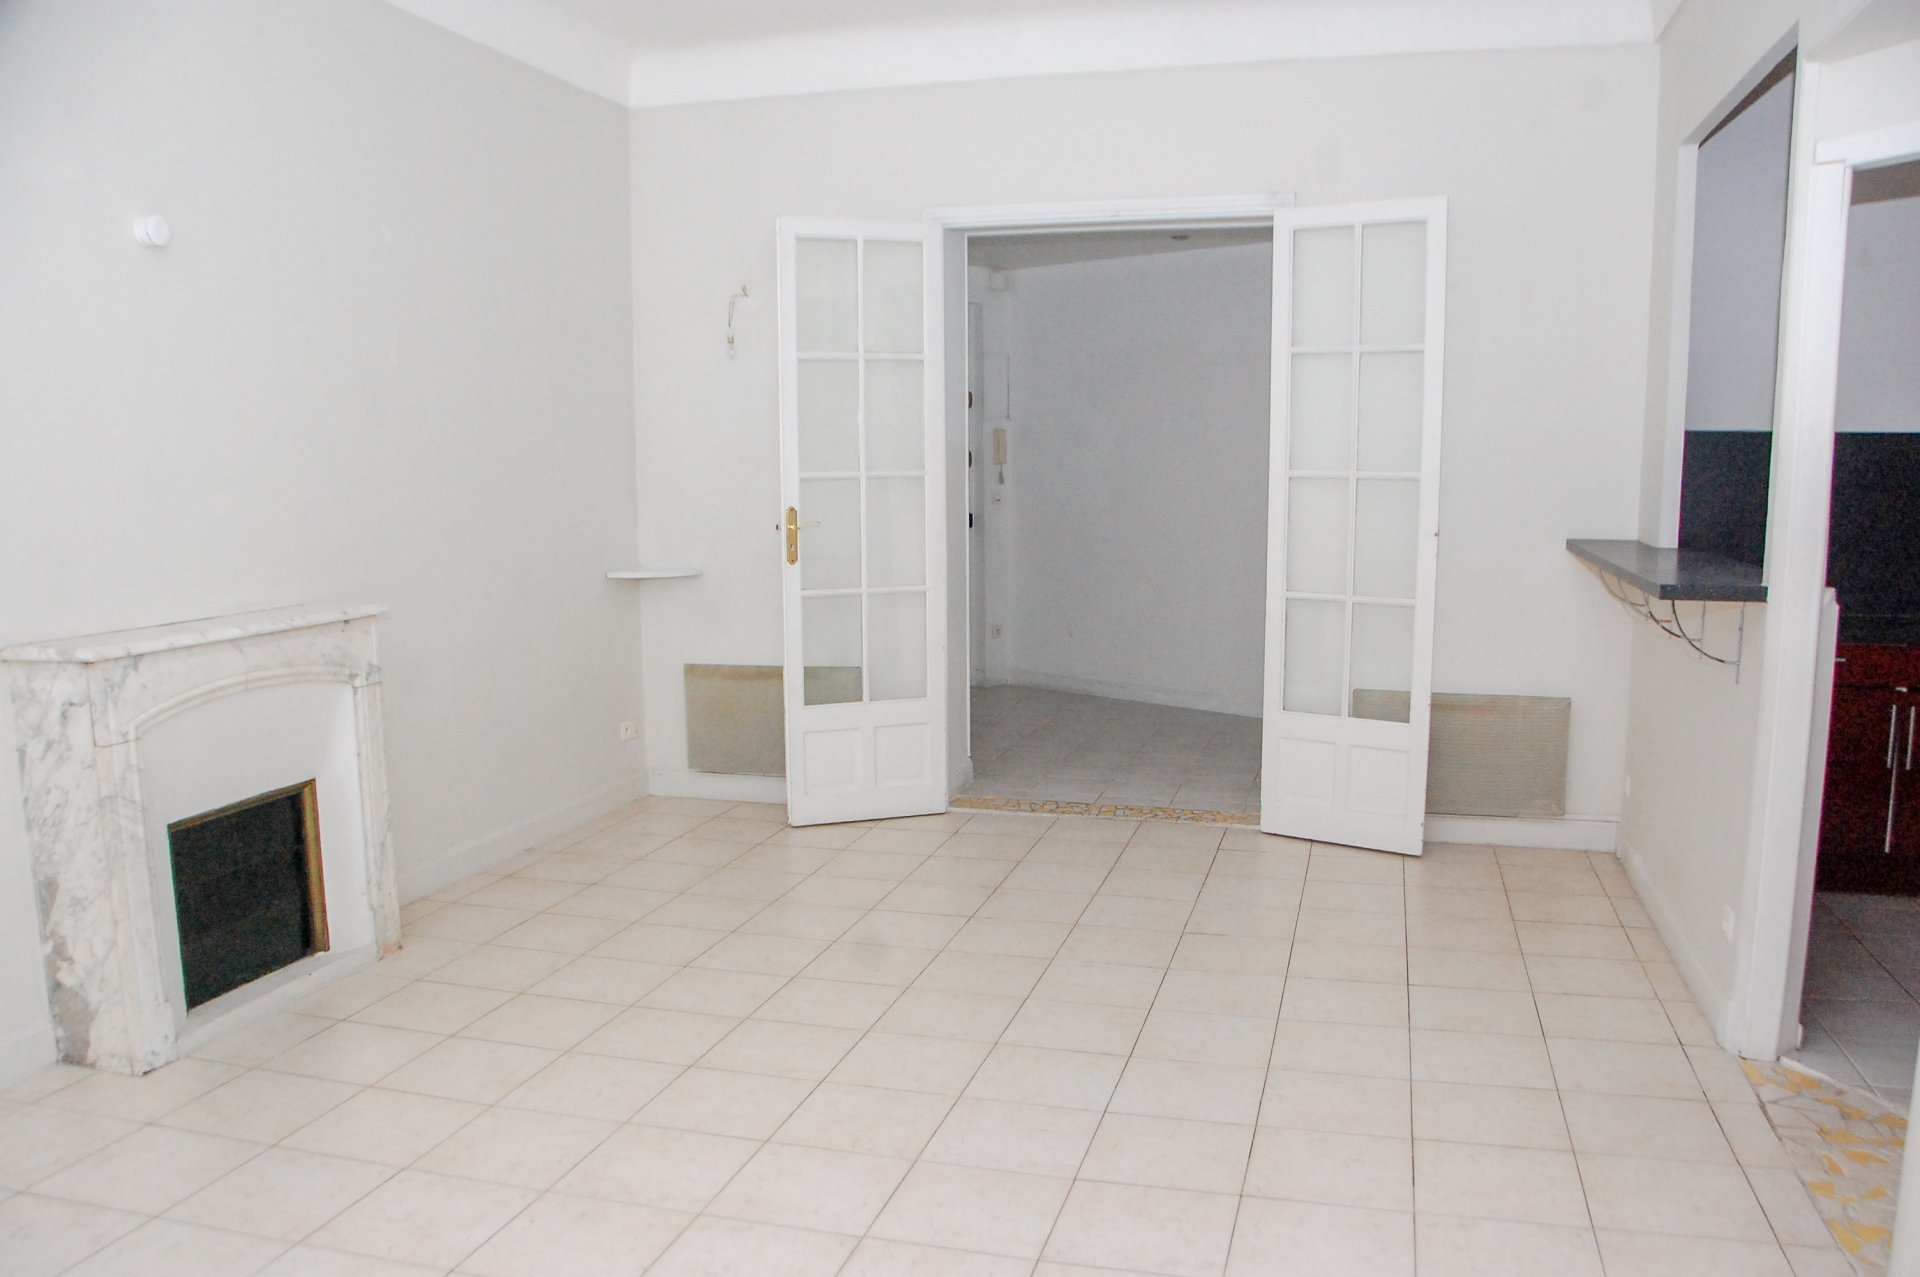 Center of Antibes, 3 bedroom flat, 98,74 sq